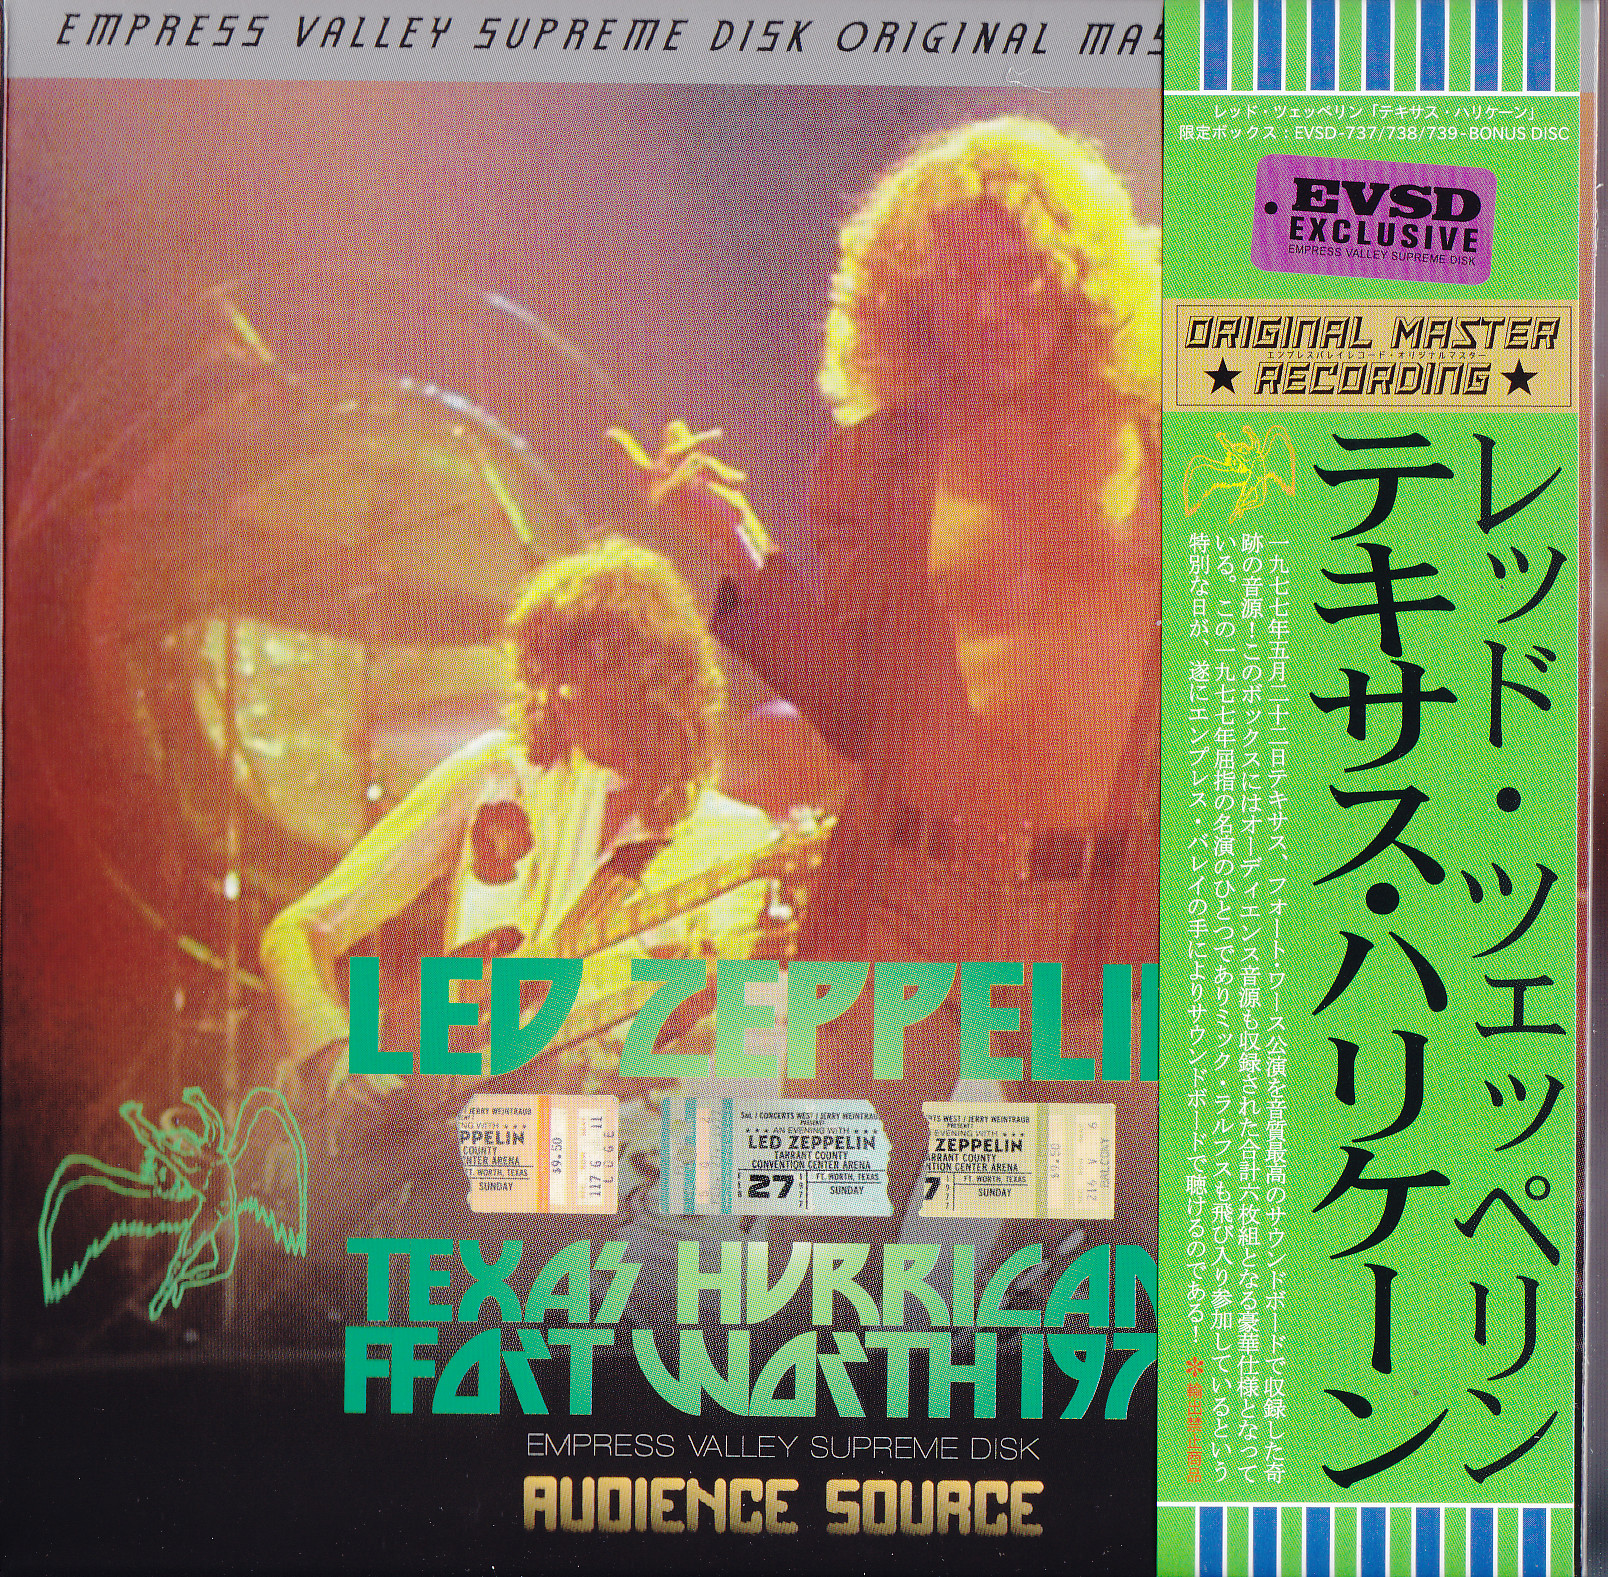 Led Zeppelin Texas Hurricane Fort Worth 1977 3cd 3bonus